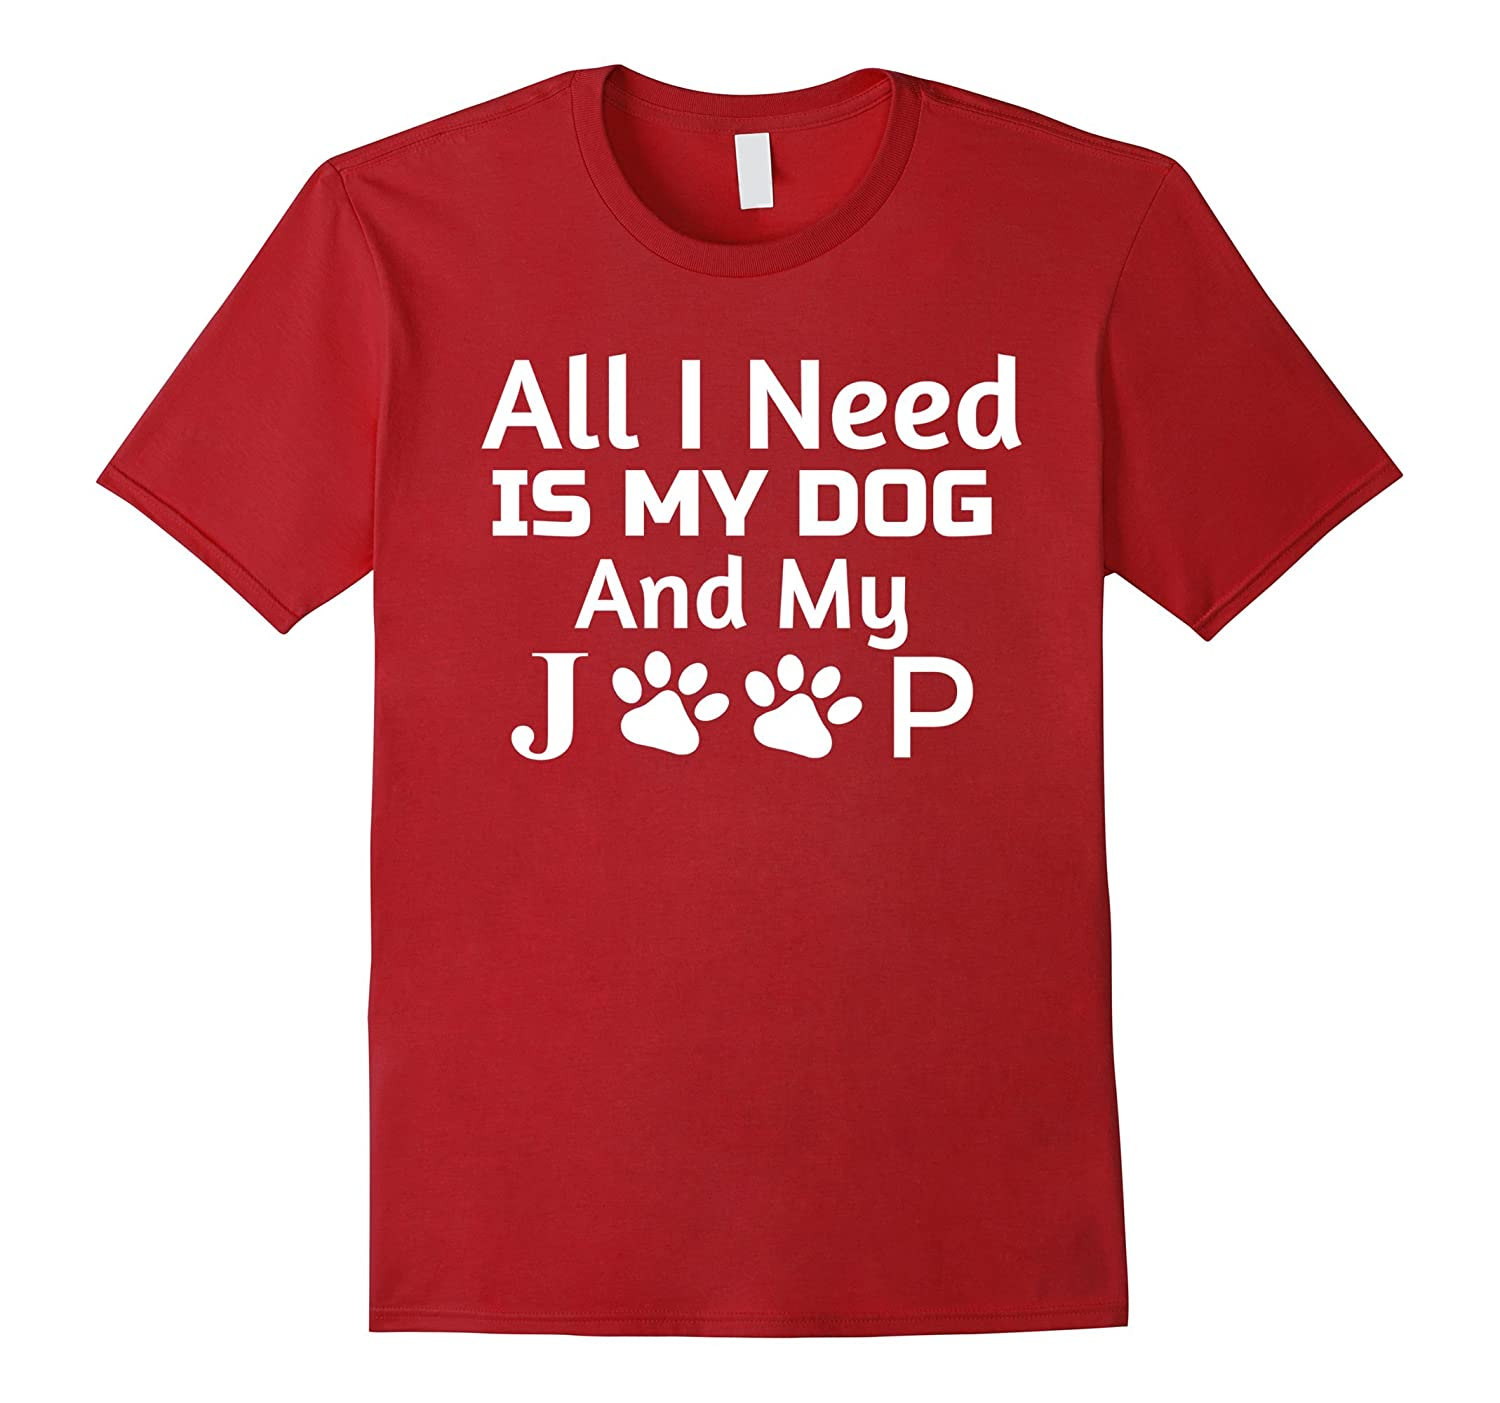 Best T-shirt gift for Jeep and Dog lovers- Need dog and Jeep